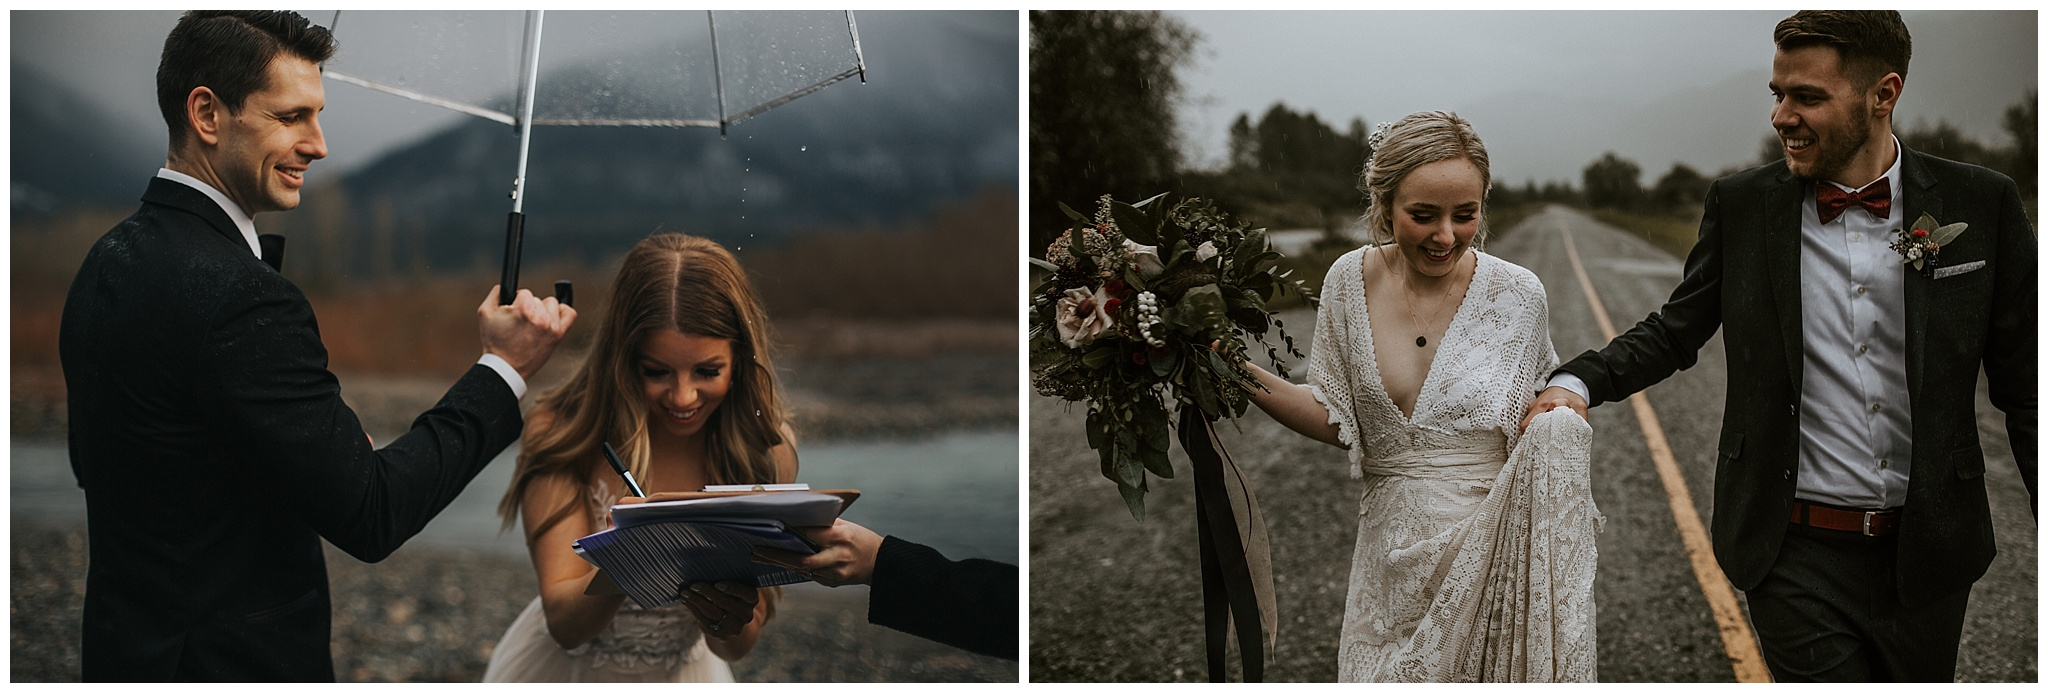 elopement-locations-in-canada.jpg